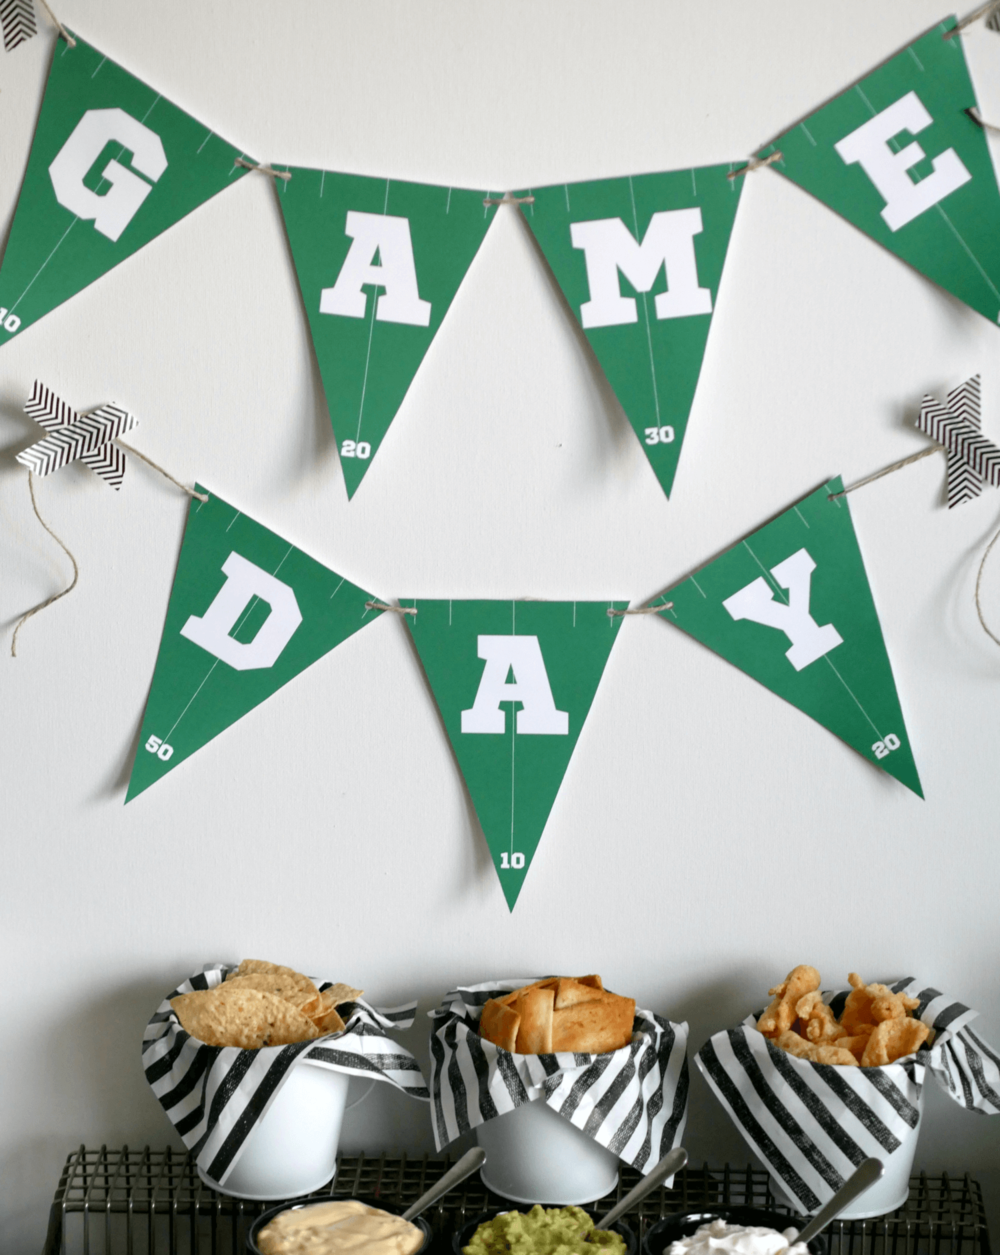 Game day banner printable / Super bowl banner idea / Game Day party ideas /  Game day food / Super bowl  party ideas /  Super bowl snacks / Styled by Carolina from MINT Event Design / www.minteventdesign.com